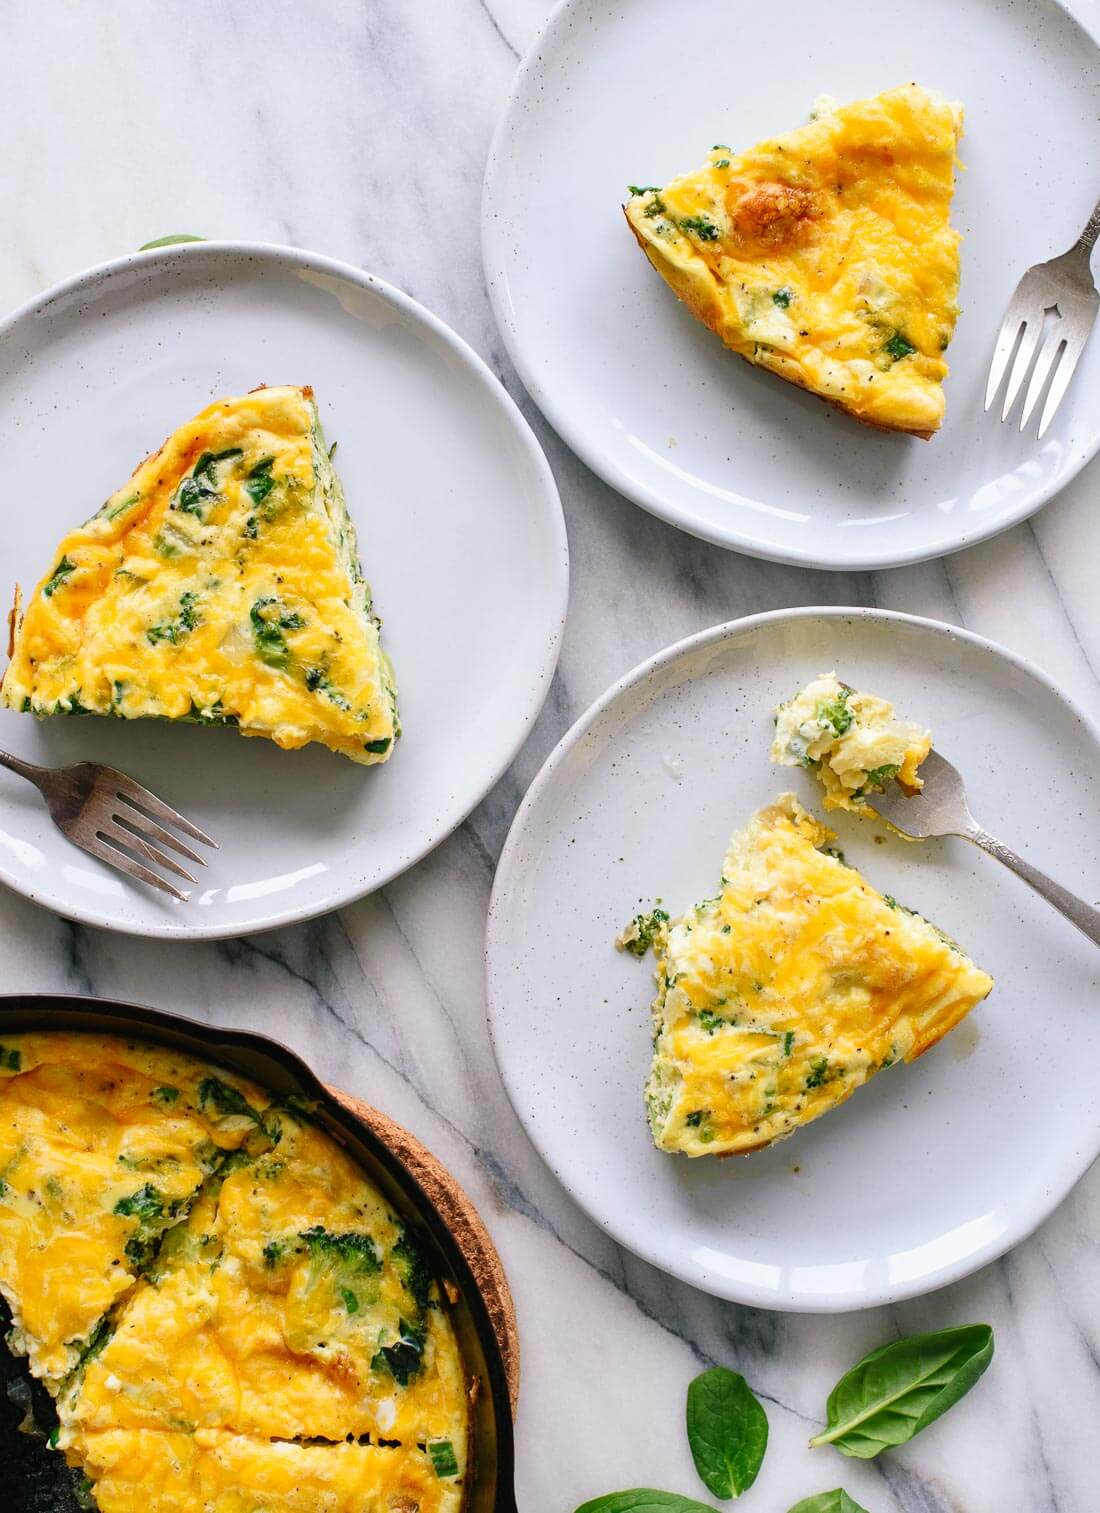 Vegetable-packed spinach, broccoli and cheddar frittata!